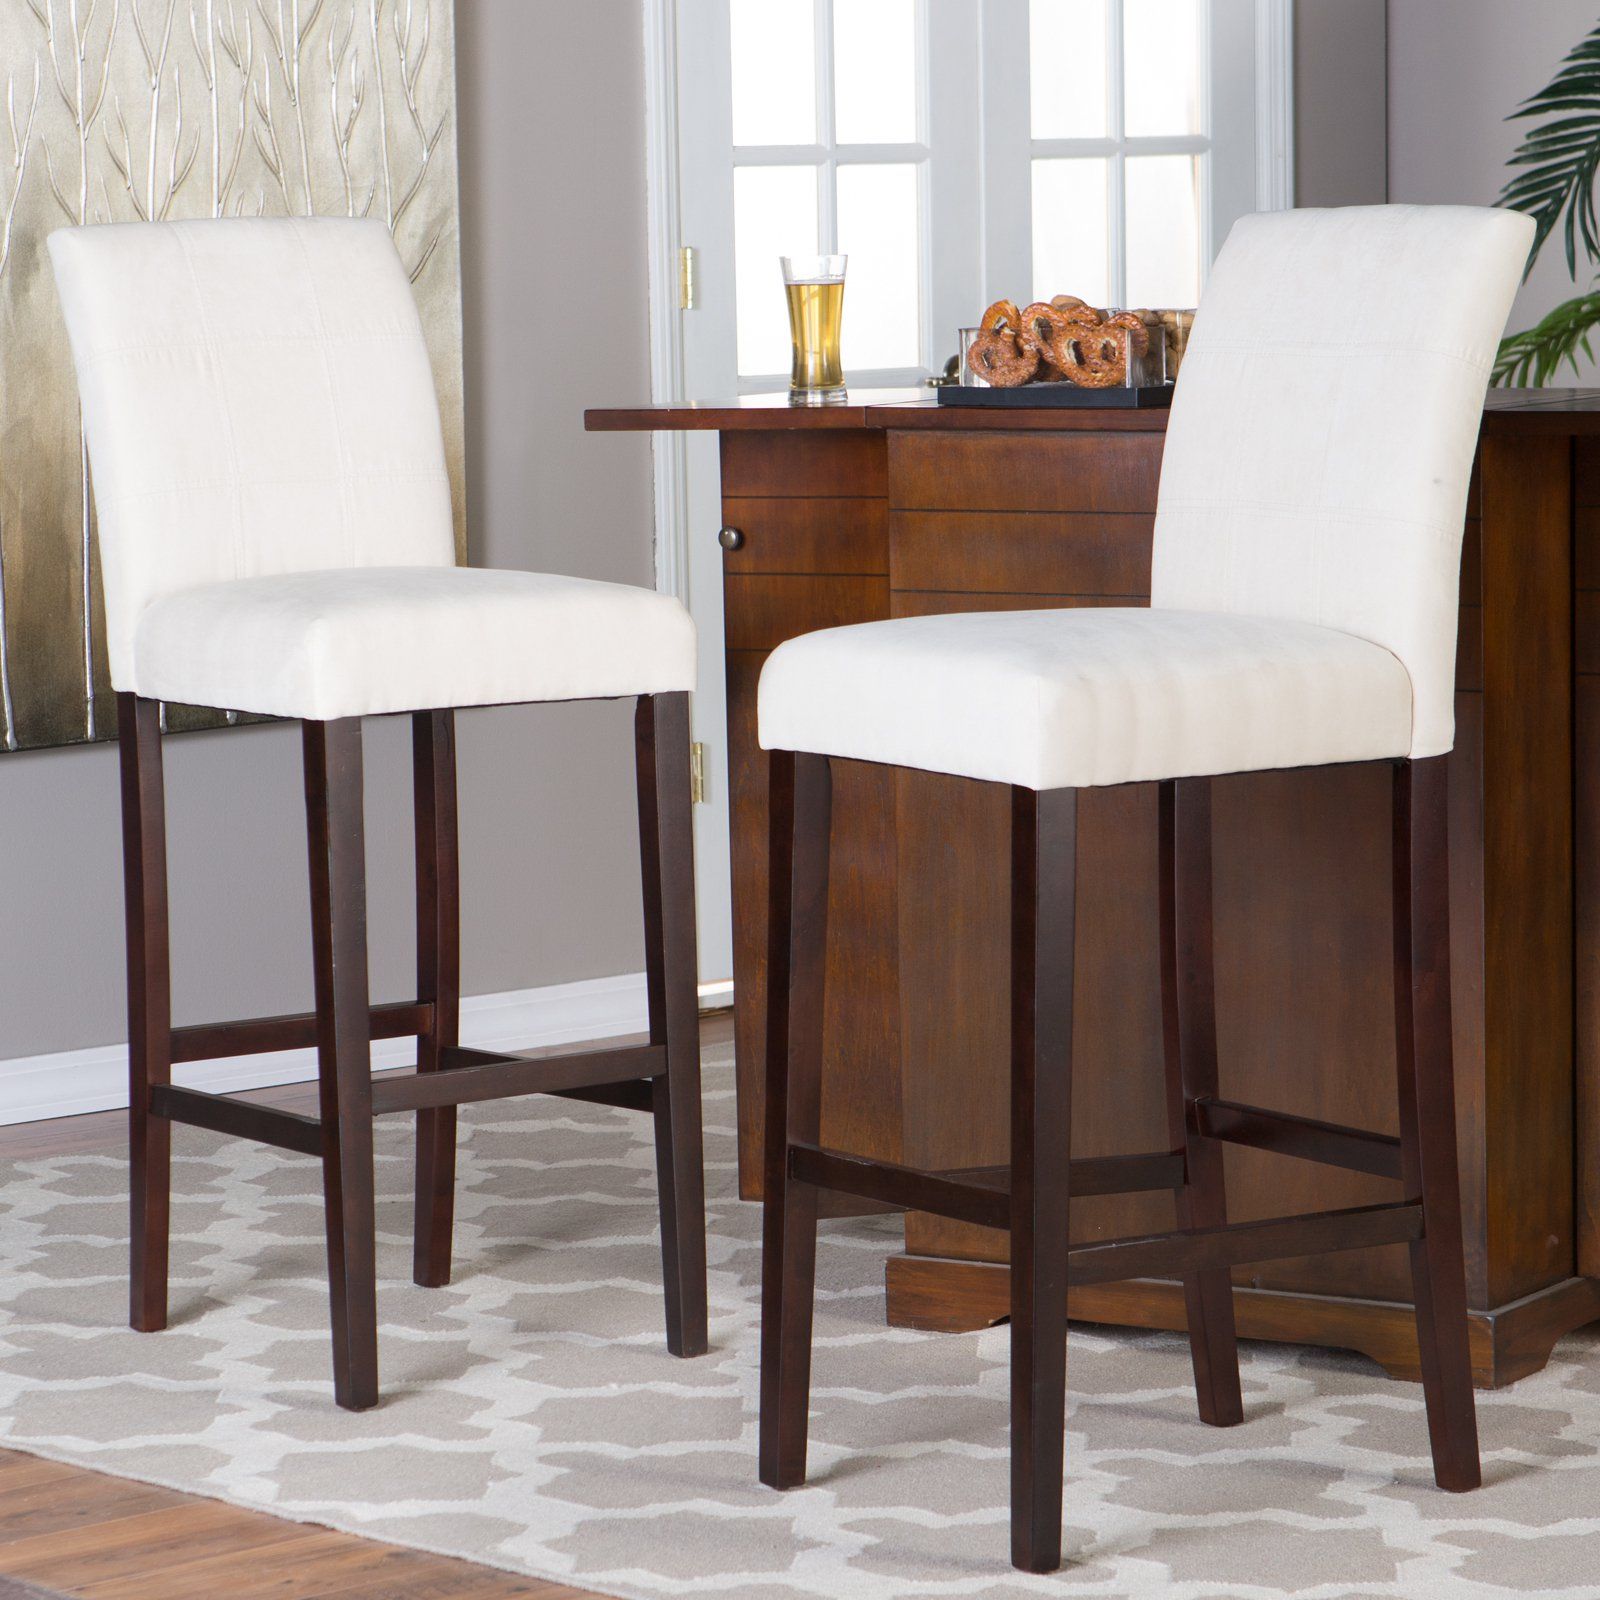 Finley home palazzo extra tall bar stool set of 2 walmart com